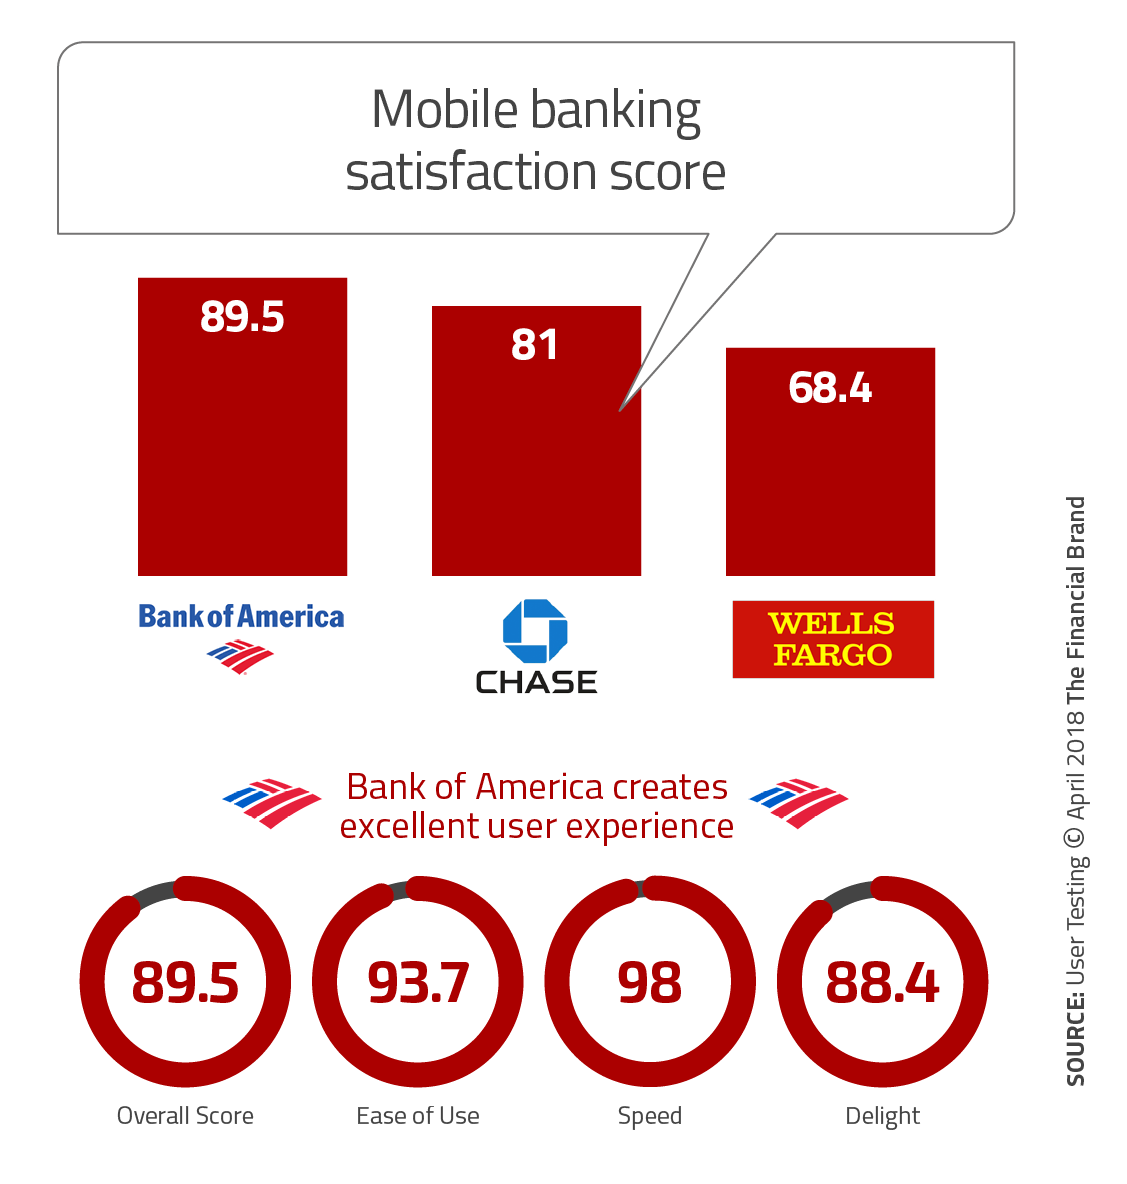 How to Succeed in Mobile Banking Like Bank of America